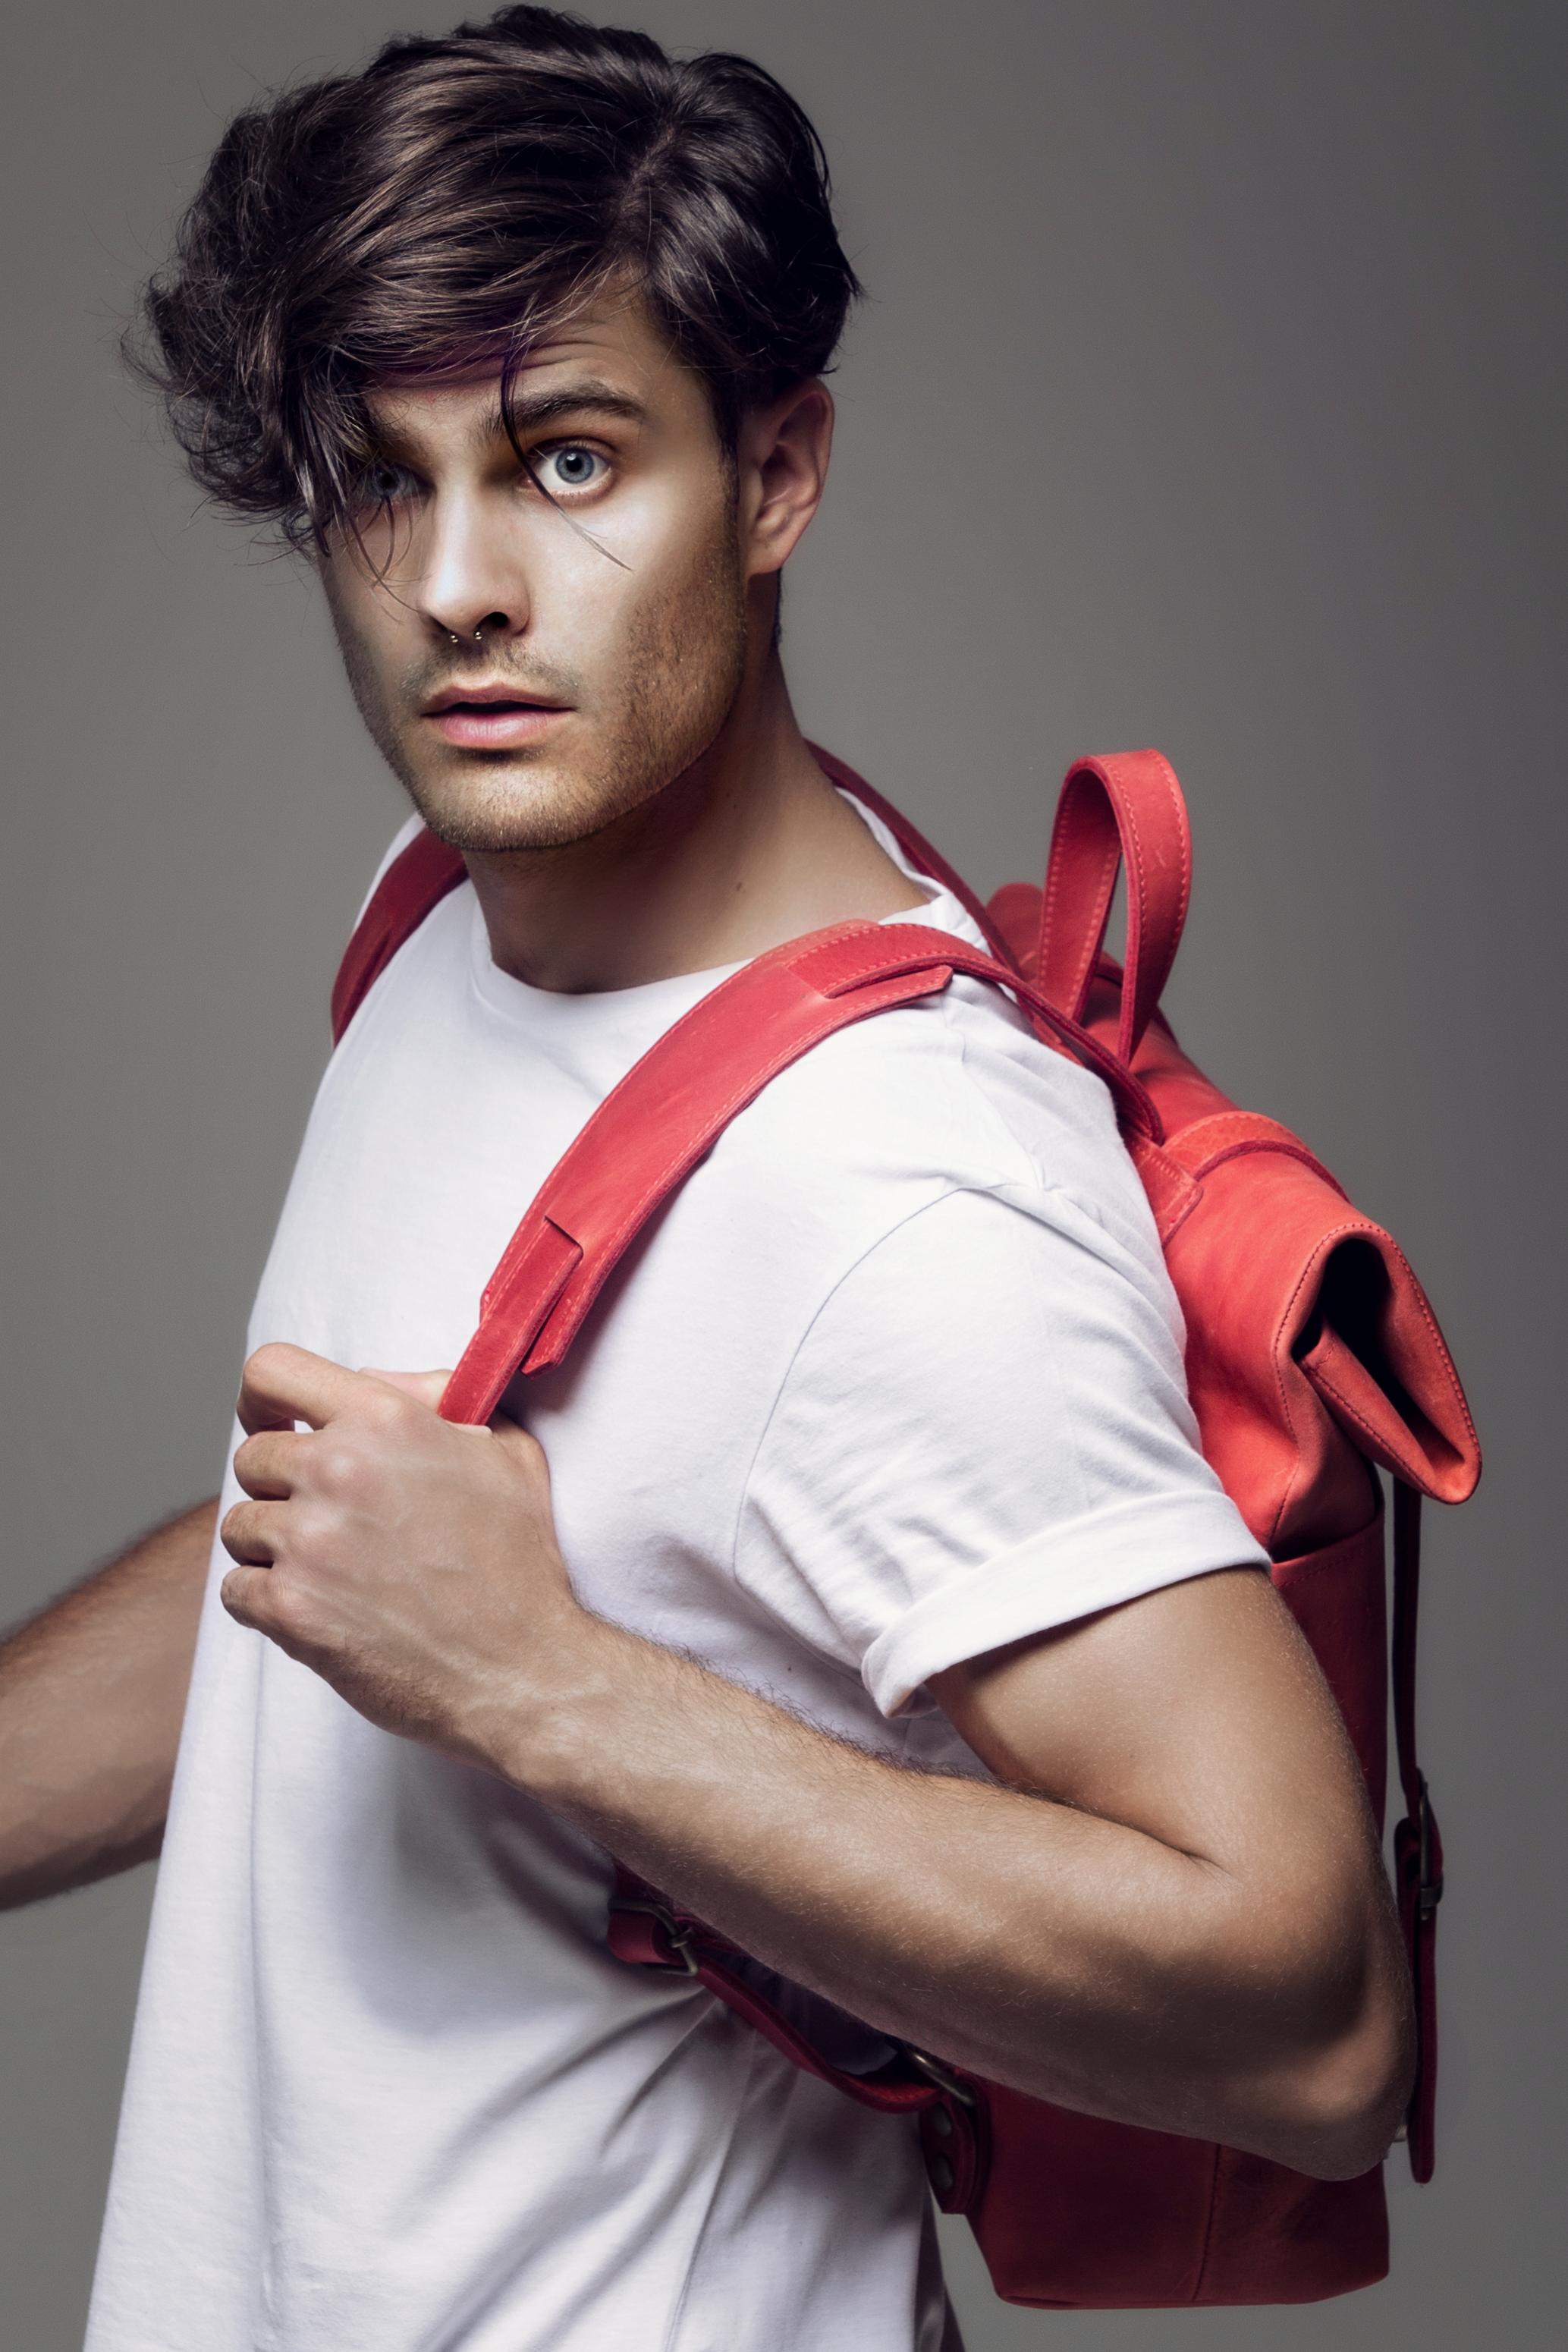 men-backpack-red leather-calister